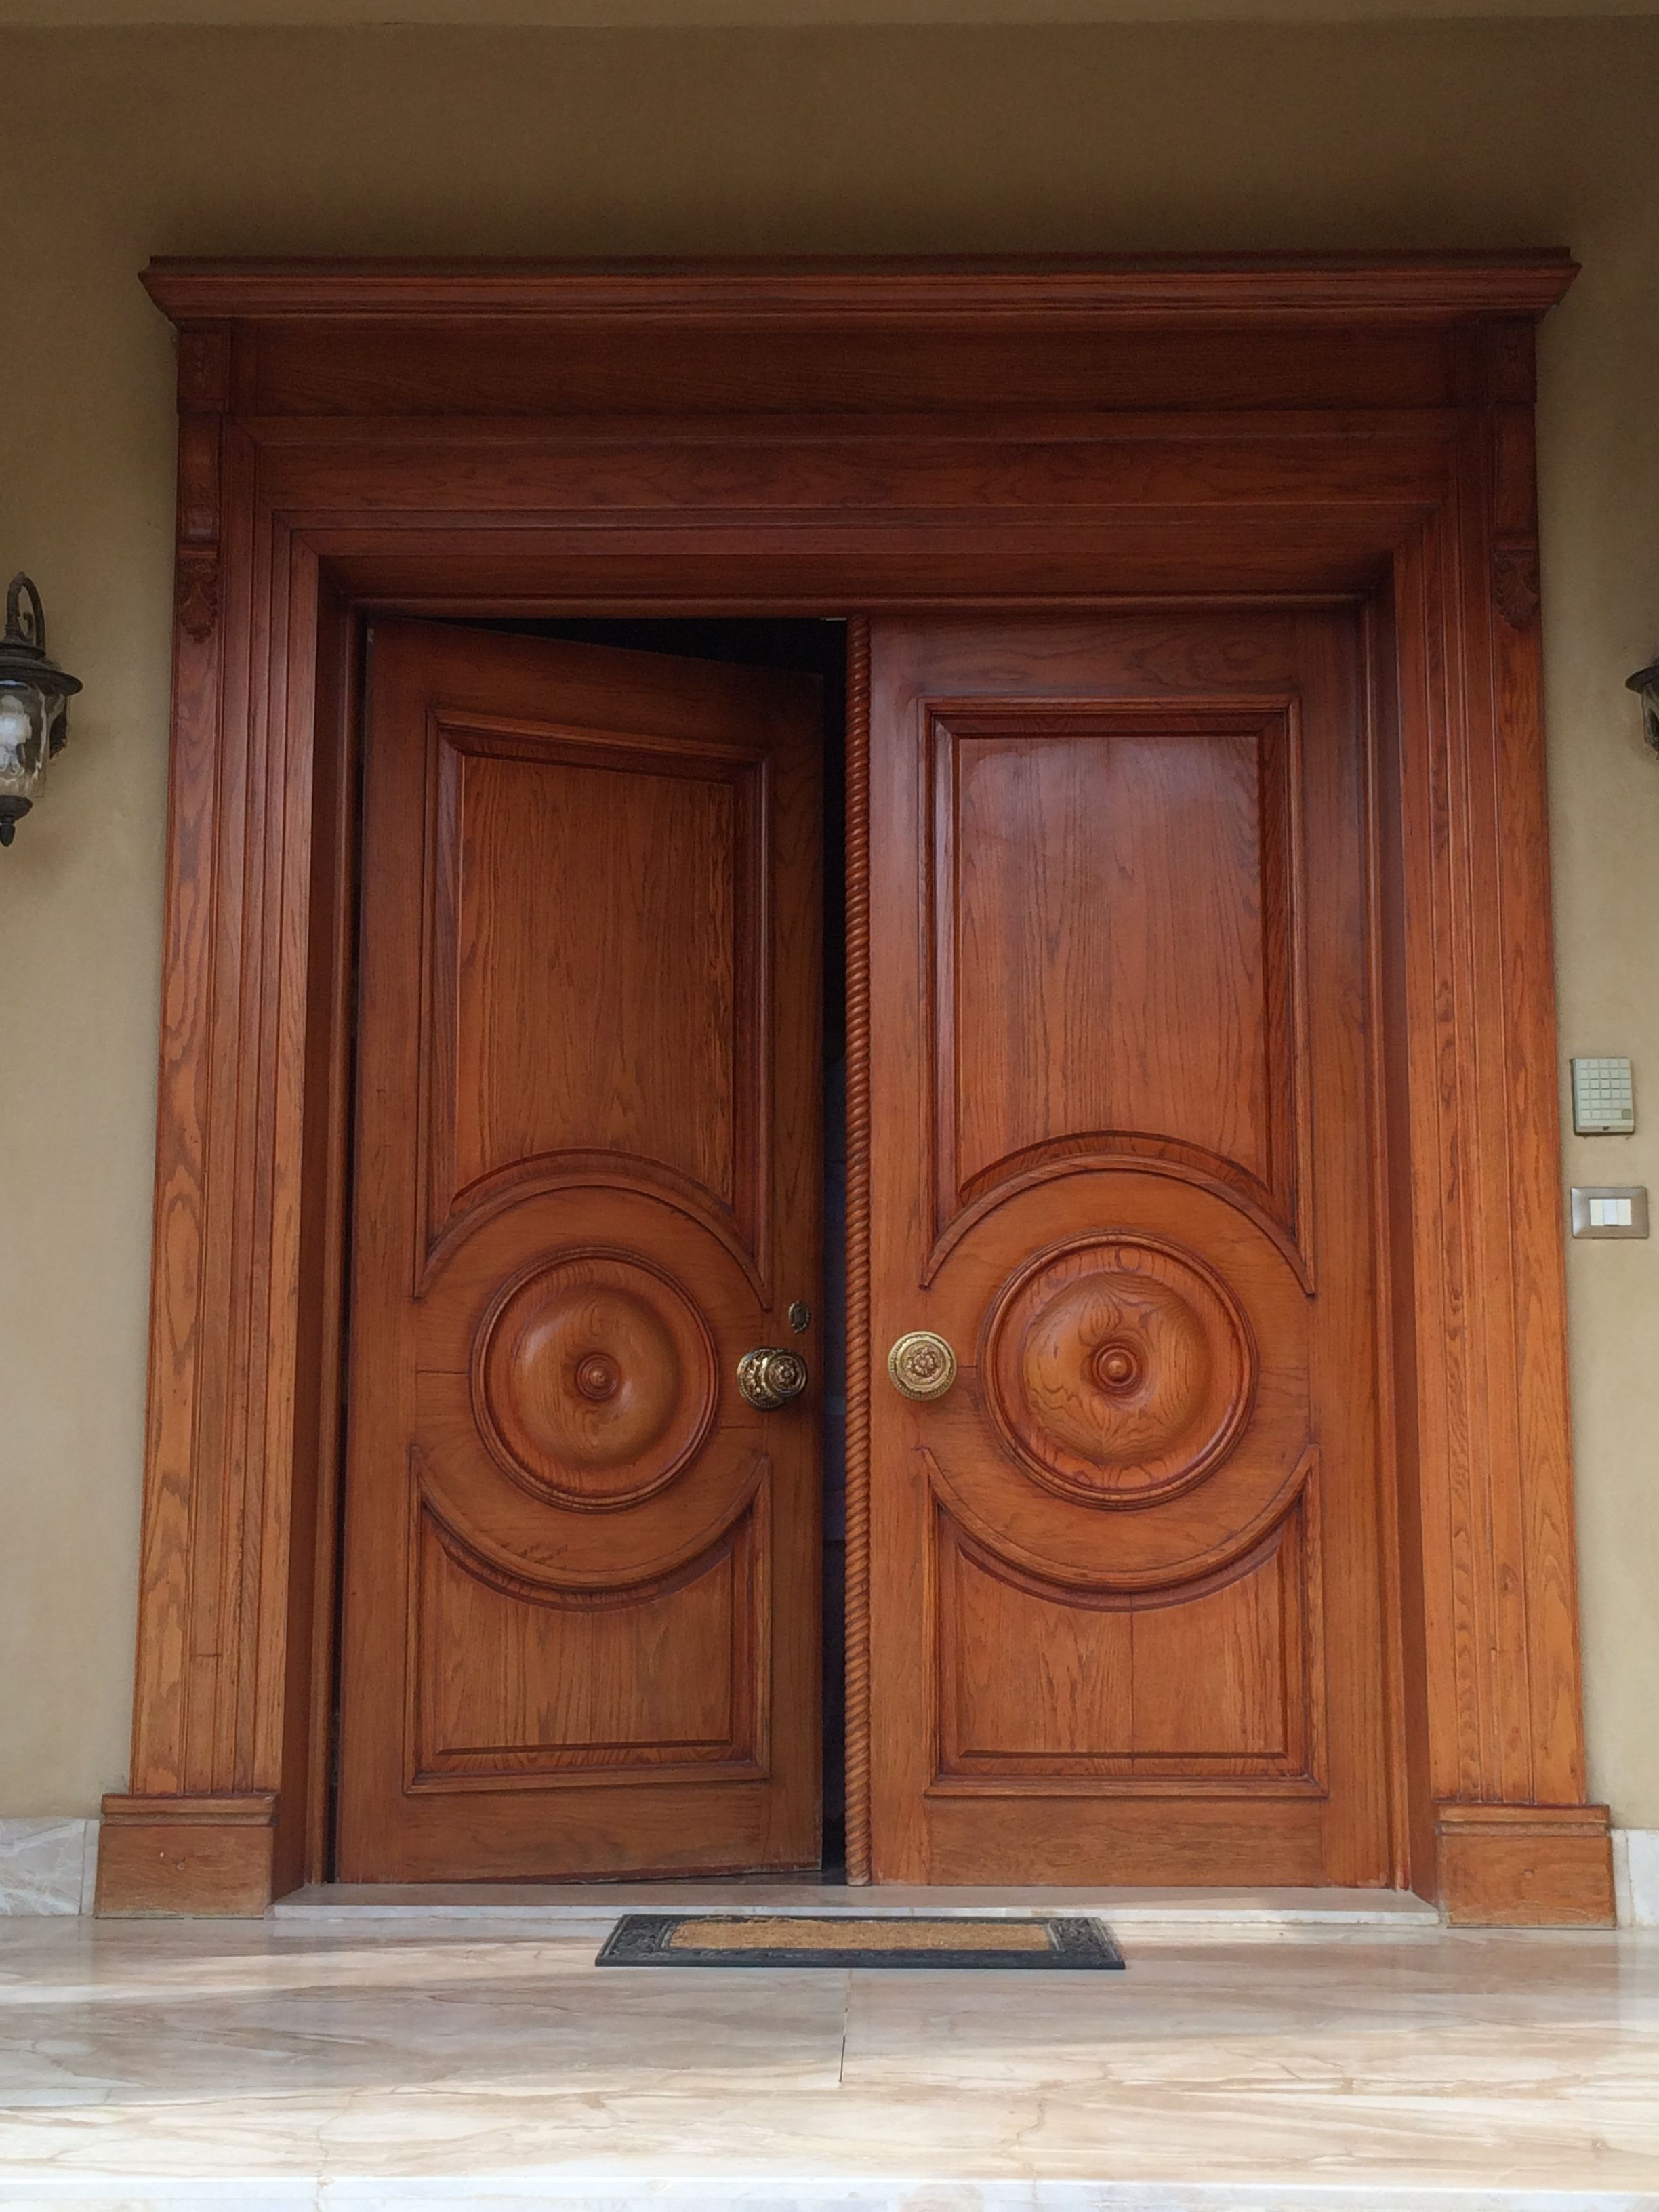 Pin By Samar El Halwagy On Doors Door Design Wood Front Doors Wooden Front Doors